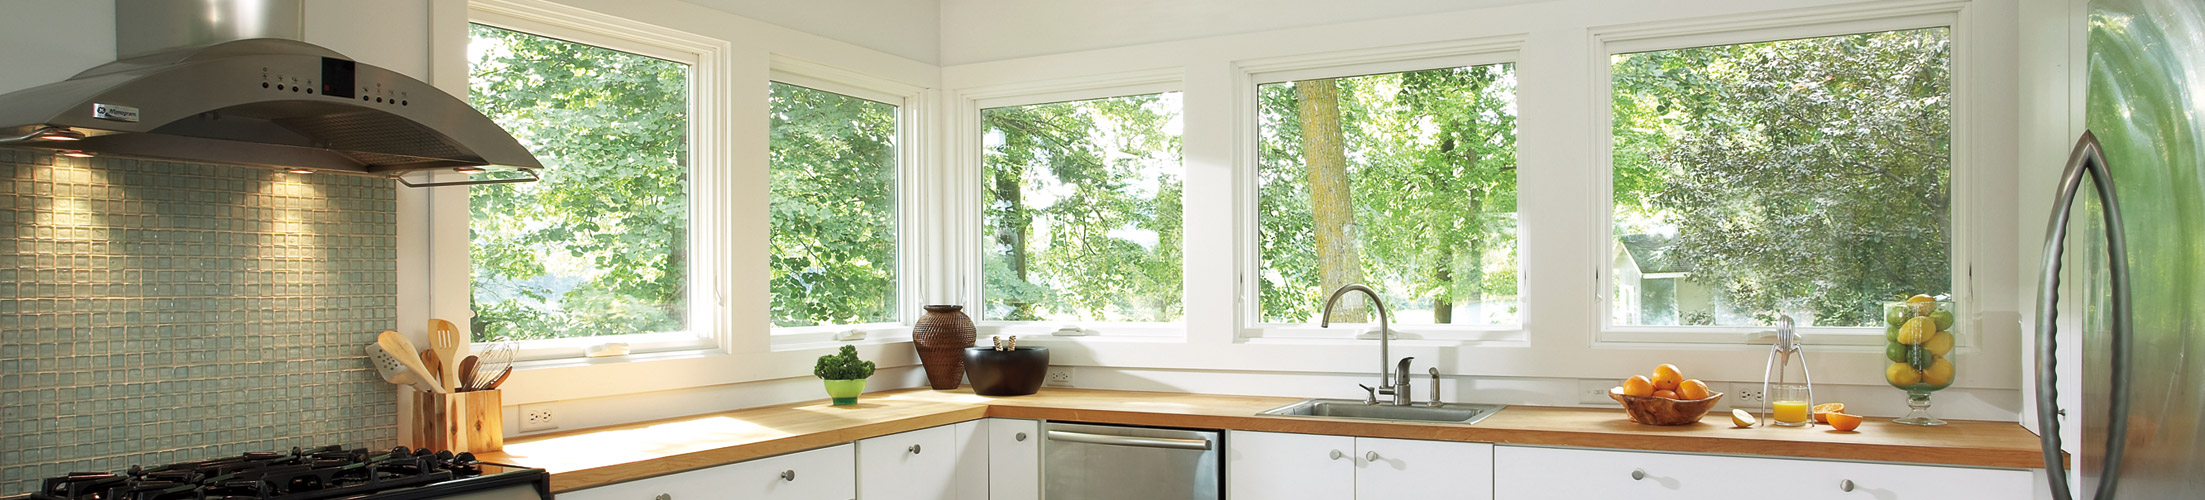 marvin part identification ptrckwhite ultimate window awning casement windows owners manual